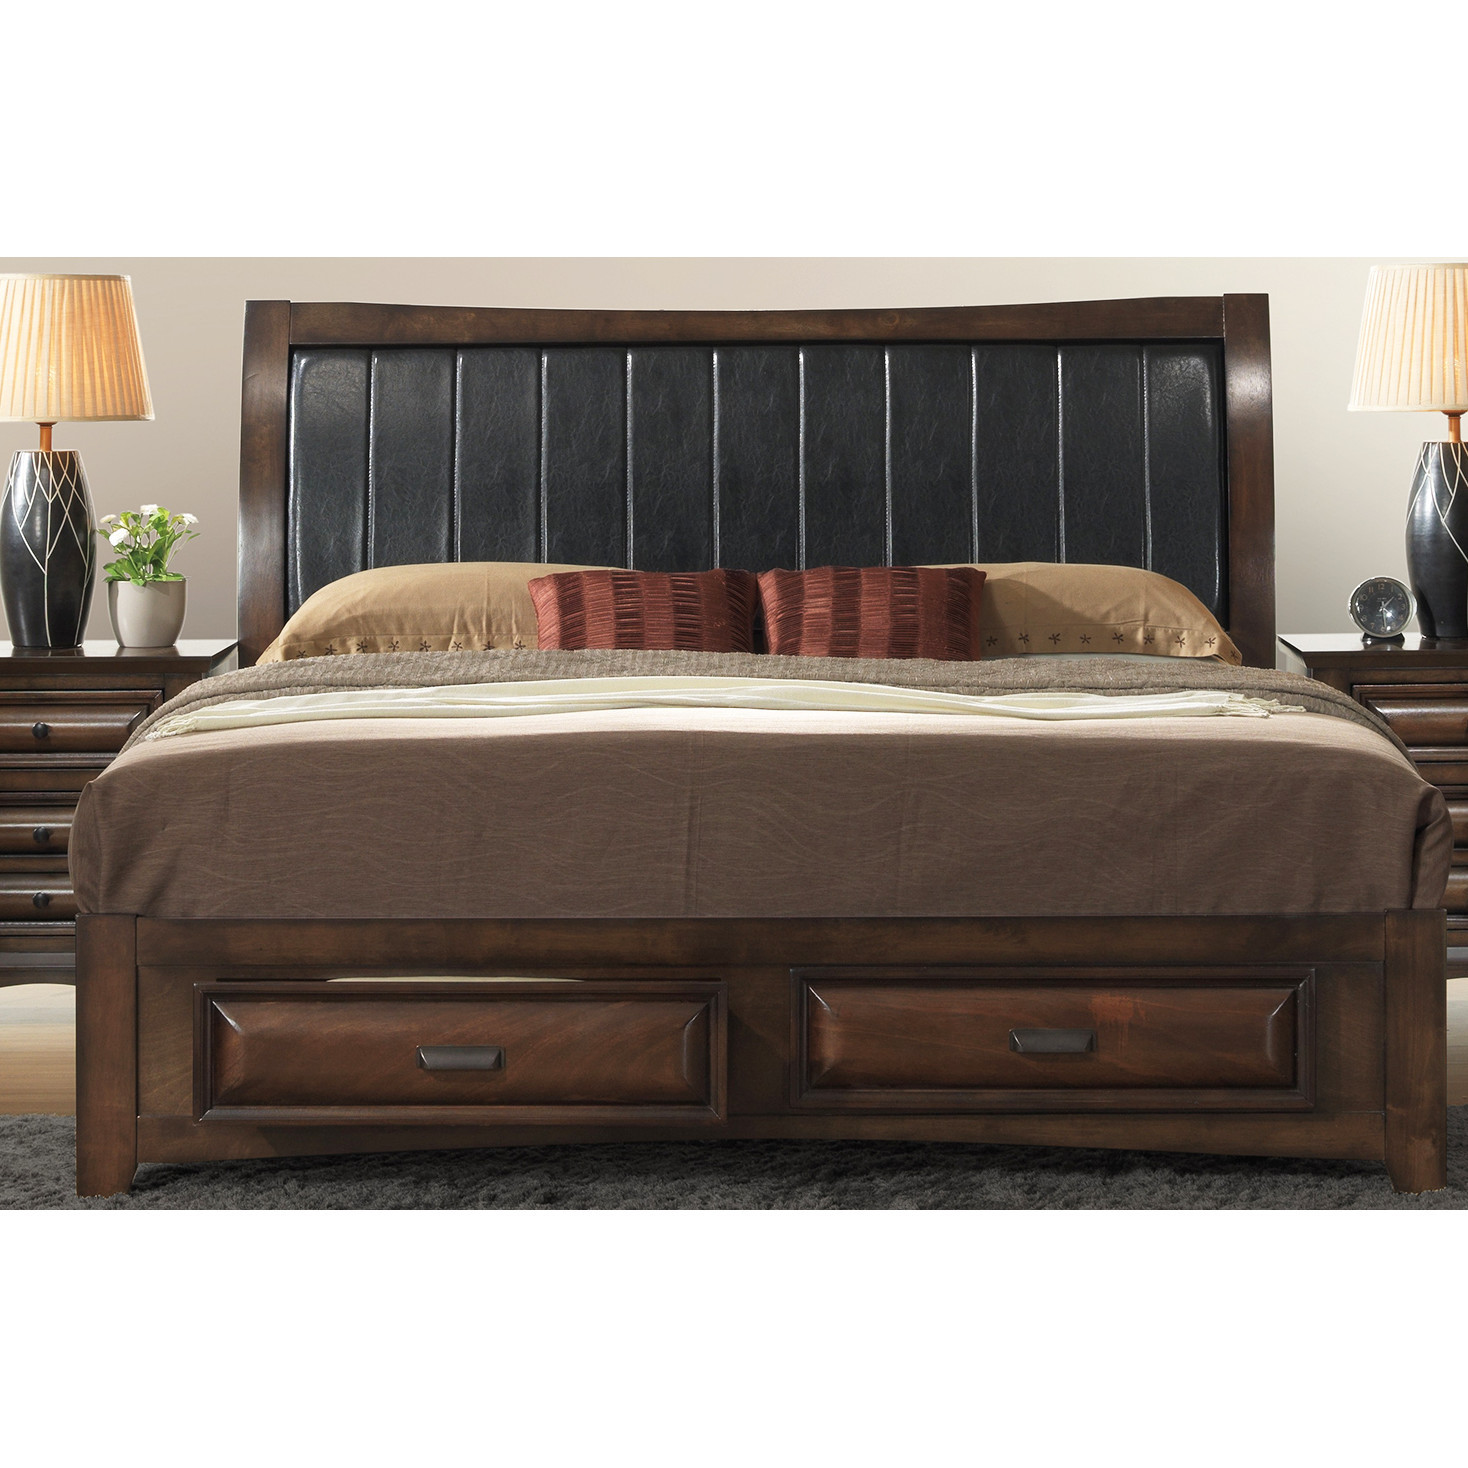 Best ideas about Wayfair Bedroom Sets . Save or Pin Roundhill Furniture Broval Panel 5 Piece Bedroom Set Now.